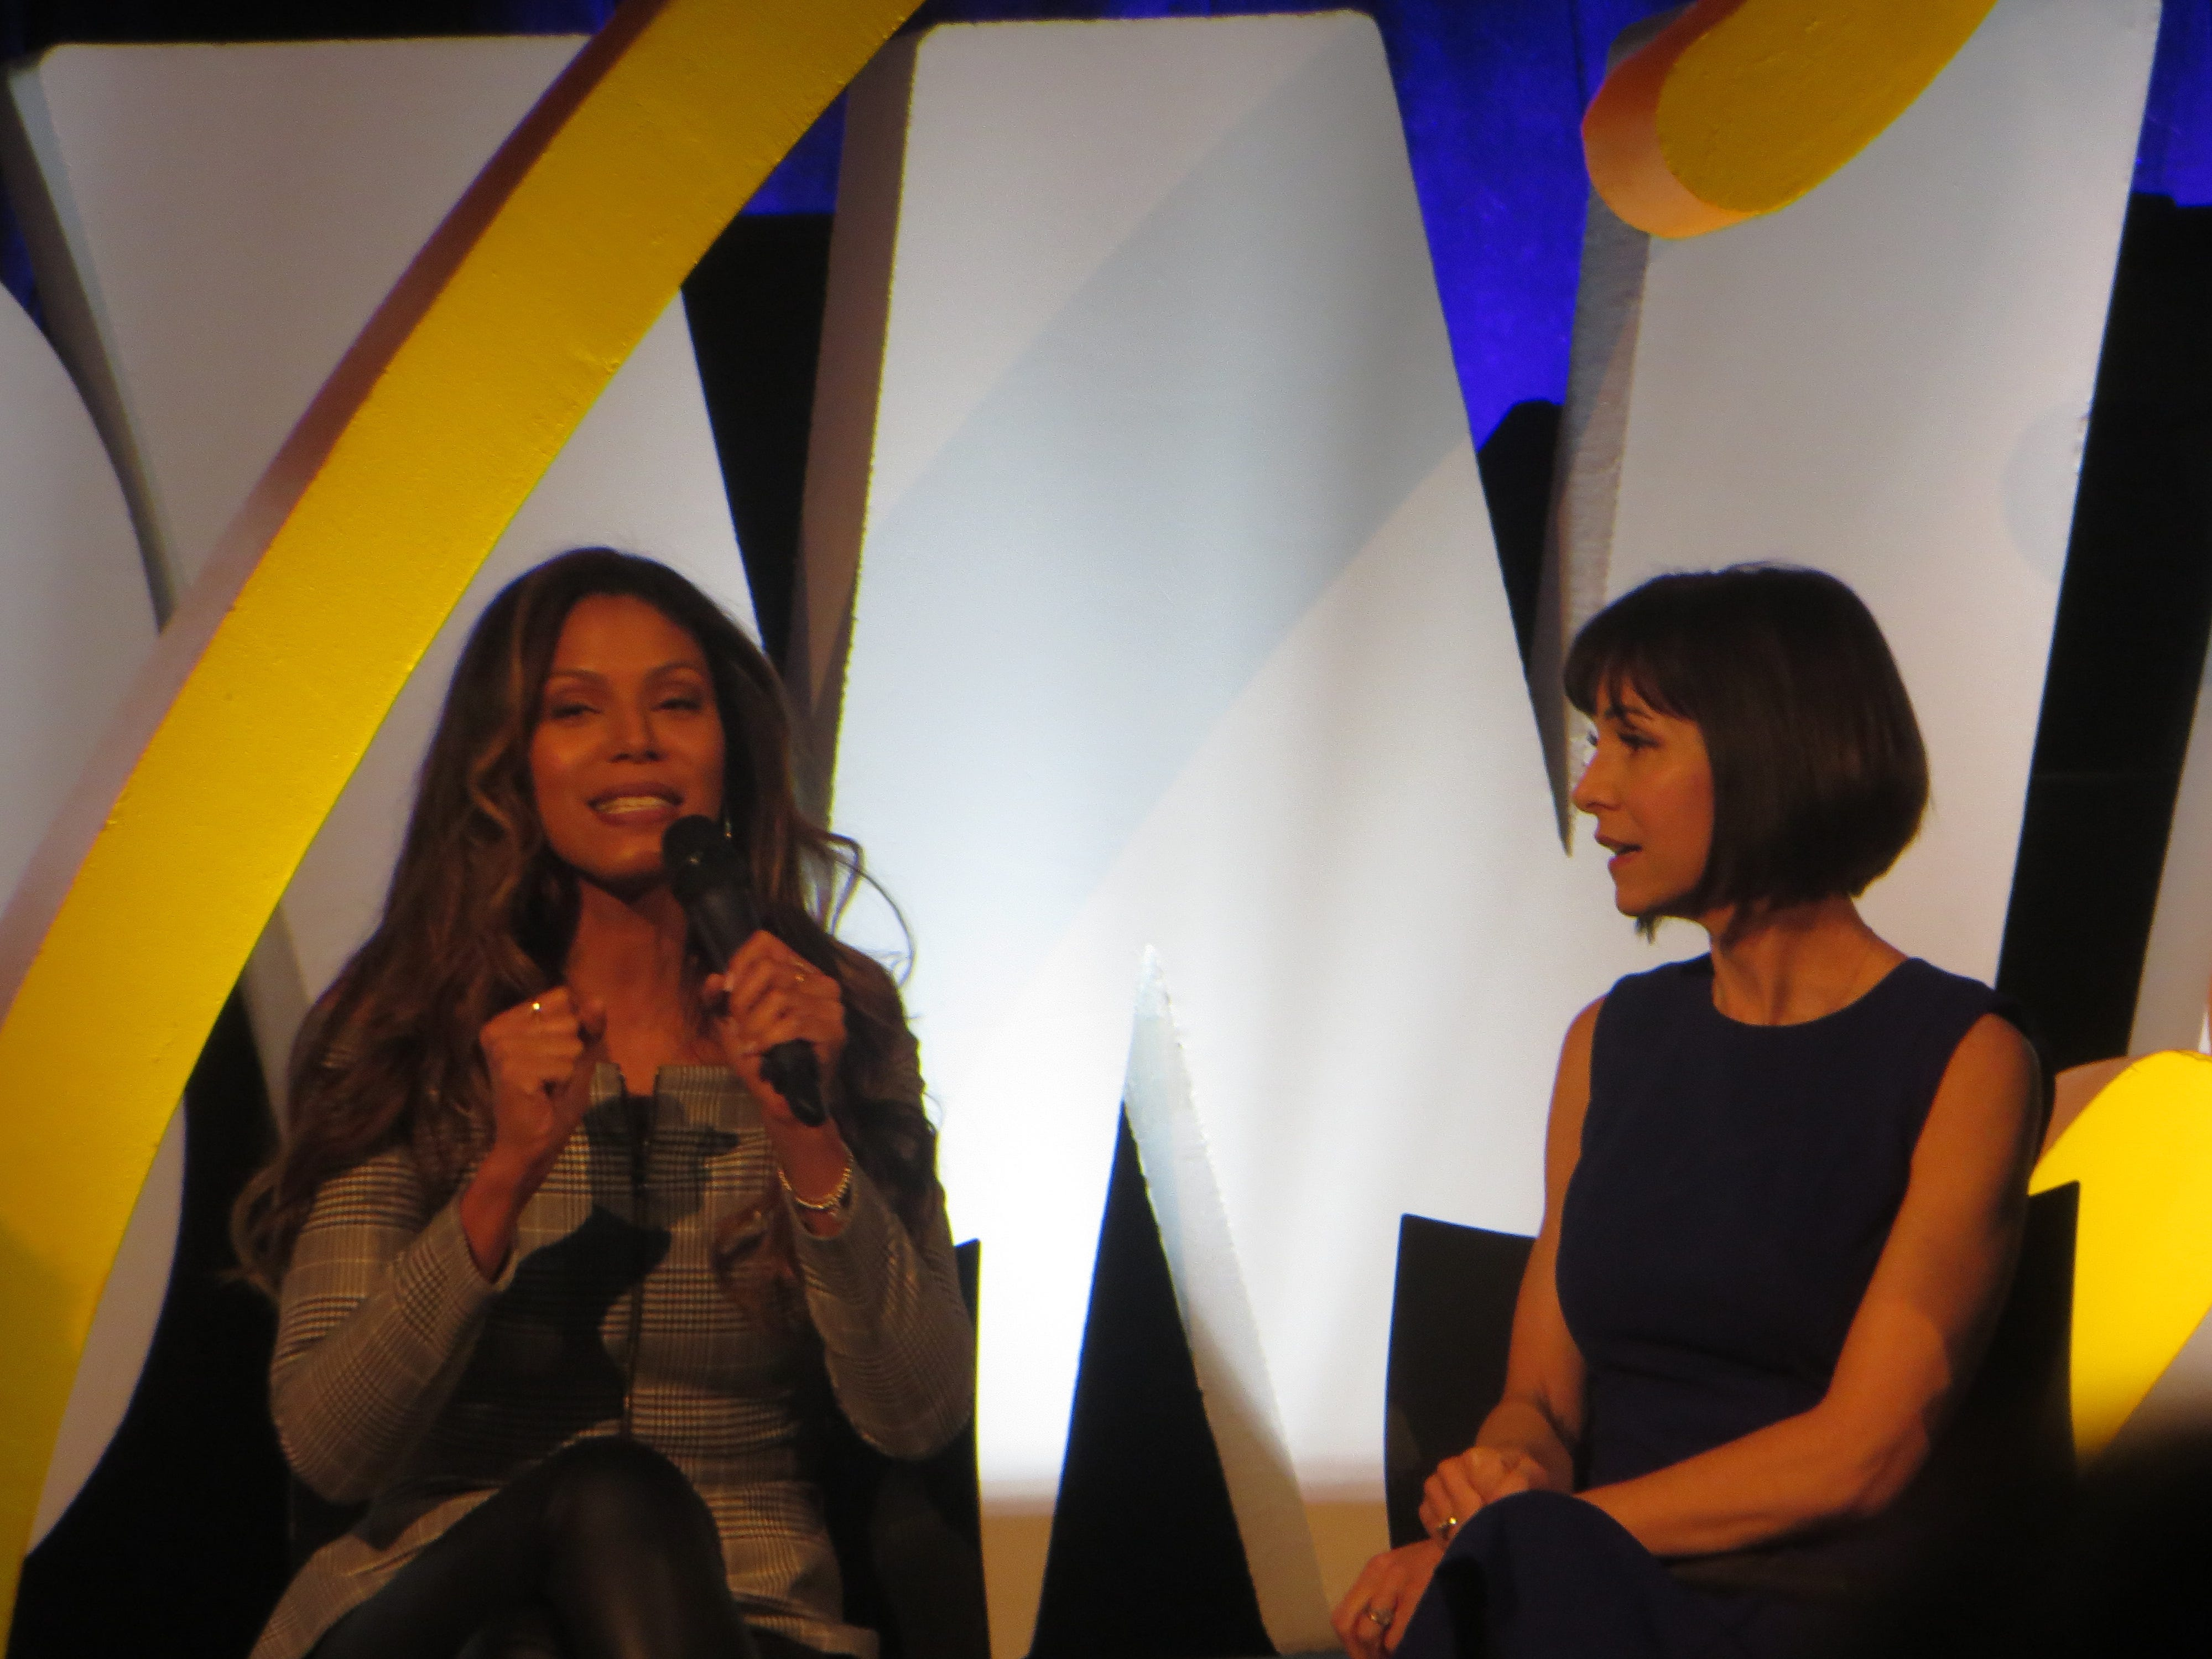 Merle Dandridge and Susan Egan during a Disney on Broadway at 25 panel at BroadwayCon 2019, held Jan. 11 to 13, 2019, at the New York Hilton Midtown in Manhattan.